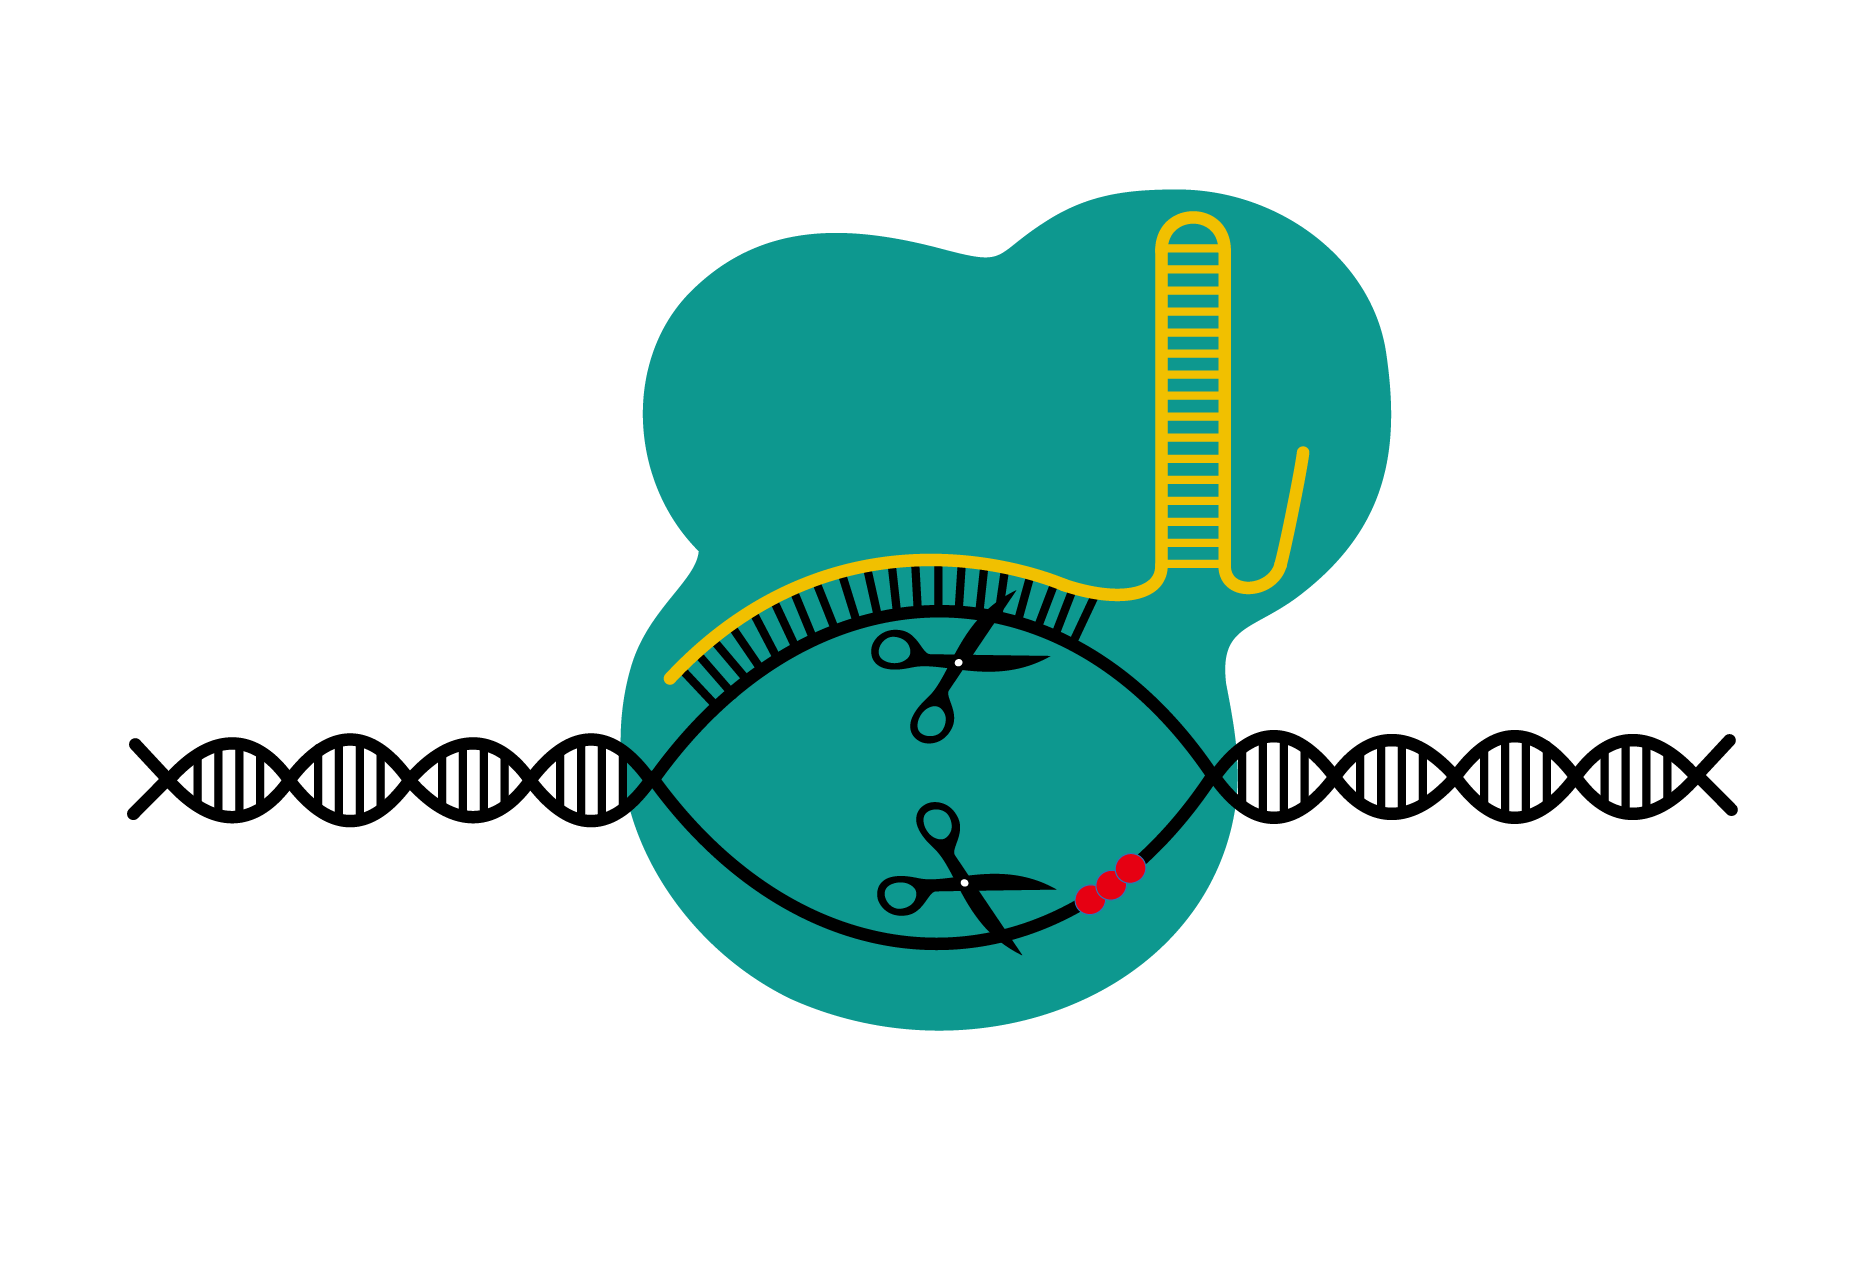 CRISPR/Cas9 acts like a pair of molecular scissors and gives researchers the ability to edit genes with less time and labour than most other molecular biology tools.   DBCLS TV/Wikimedia Commons  (CC BY 4.0)